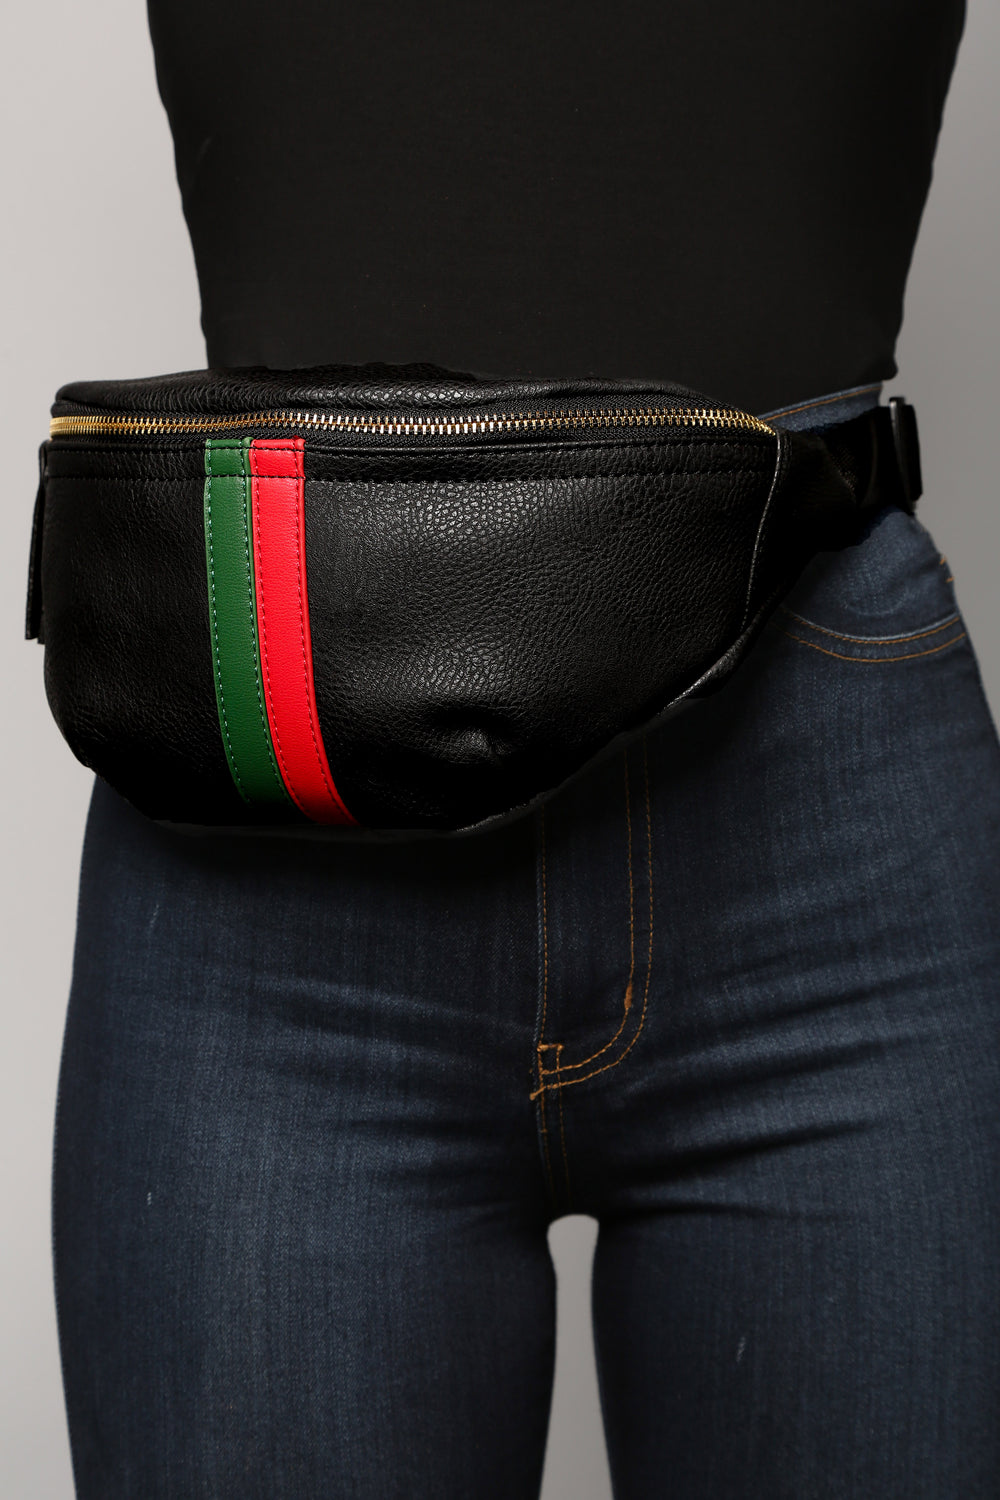 So Reckless Fanny Pack - Black